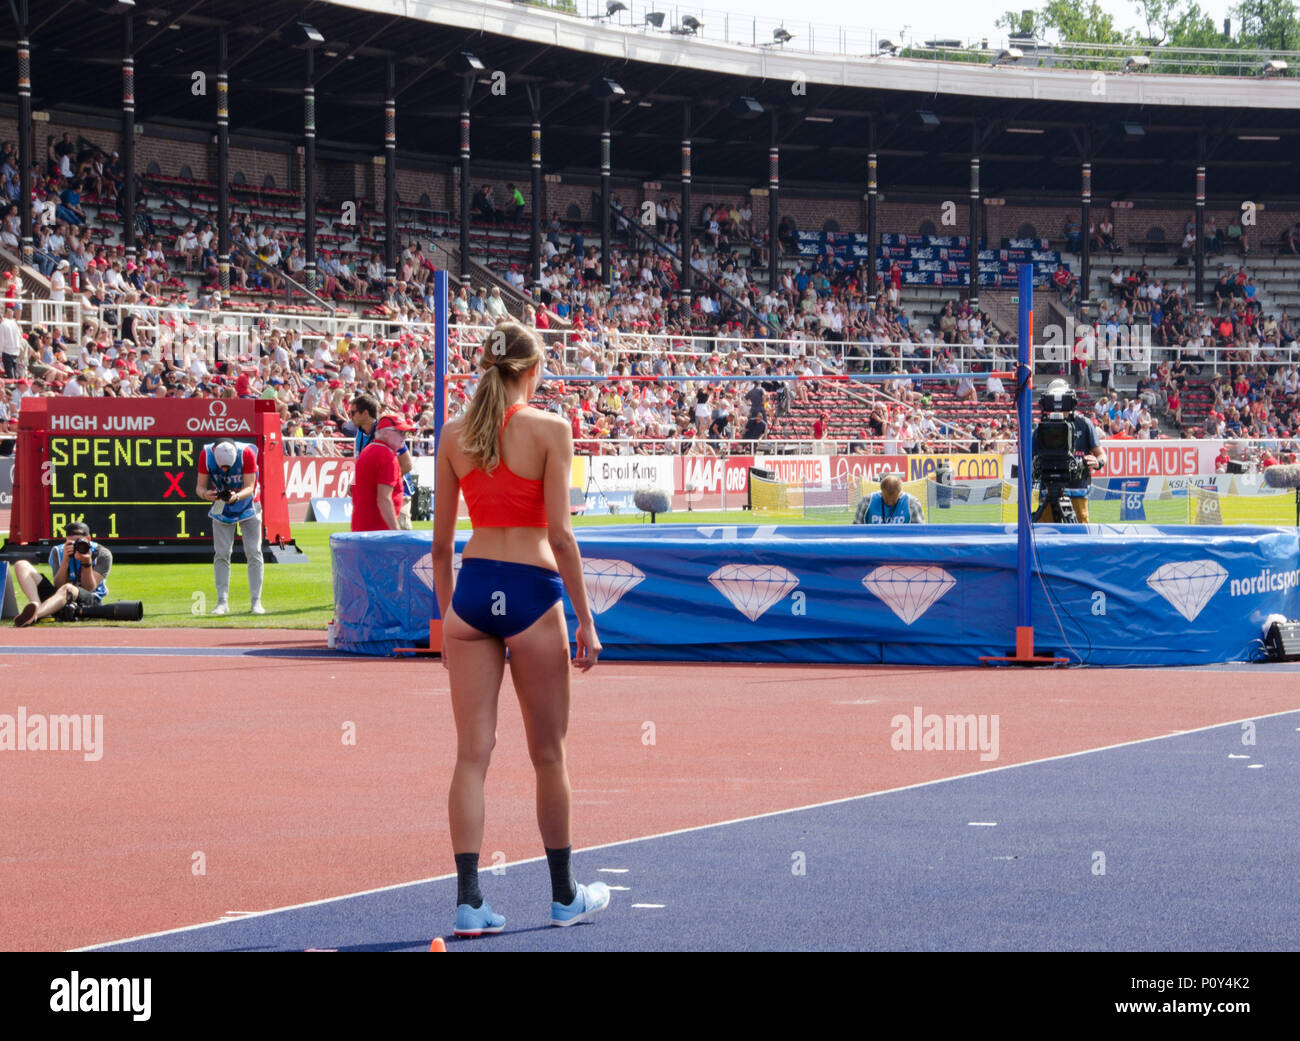 Stockholm, Sweden - 10 June 2018. High jump women on the Diamond league- competition at Stockholm Stadium. Alessia Trost from Italy preparing for her jump. Credit: Jari Juntunen/Alamy Live News - Stock Image